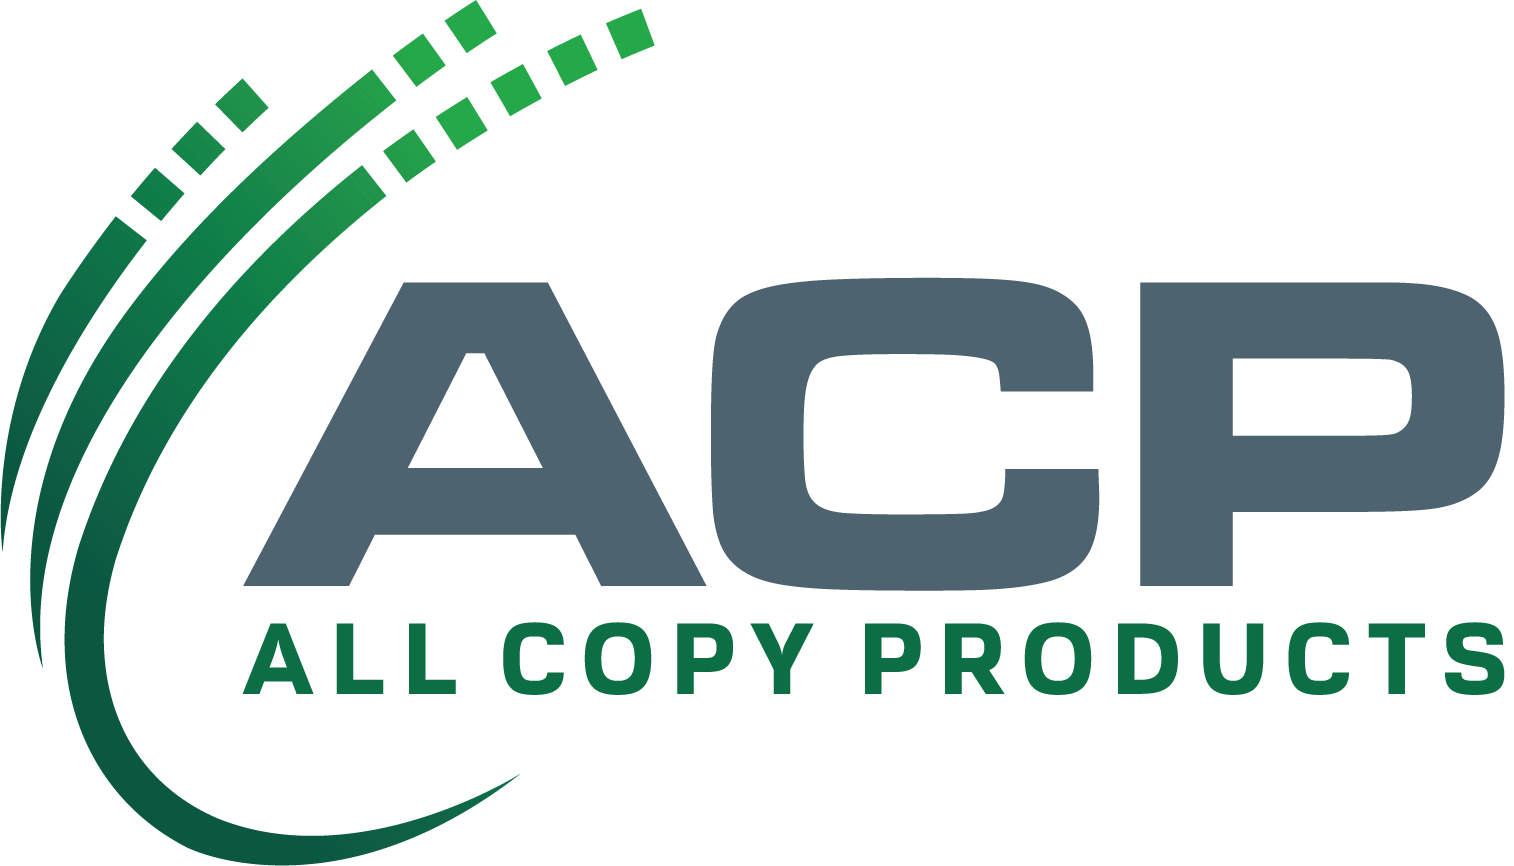 full color all copy products logo